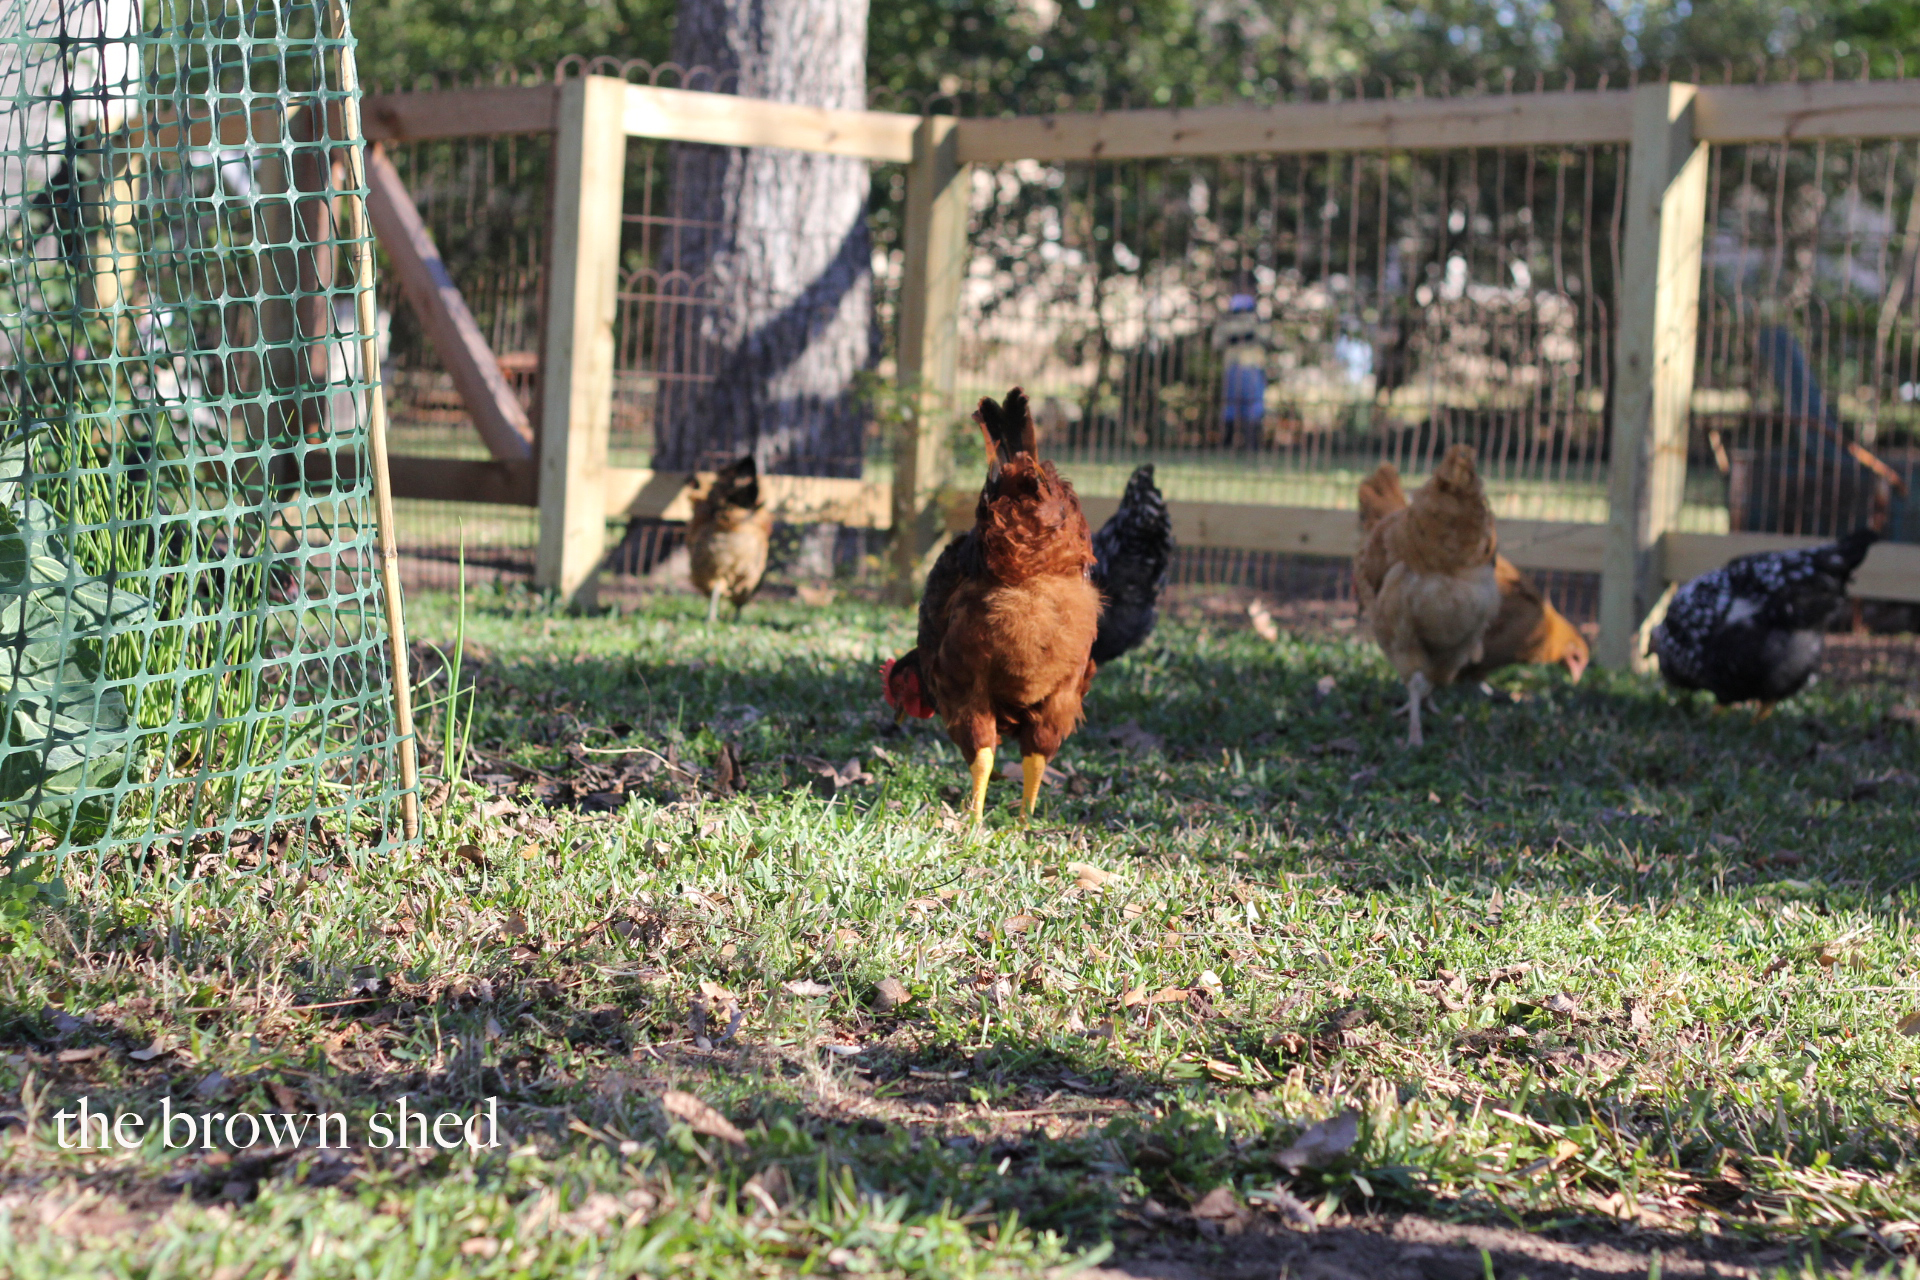 chickens in the garden | thebrownshed.com